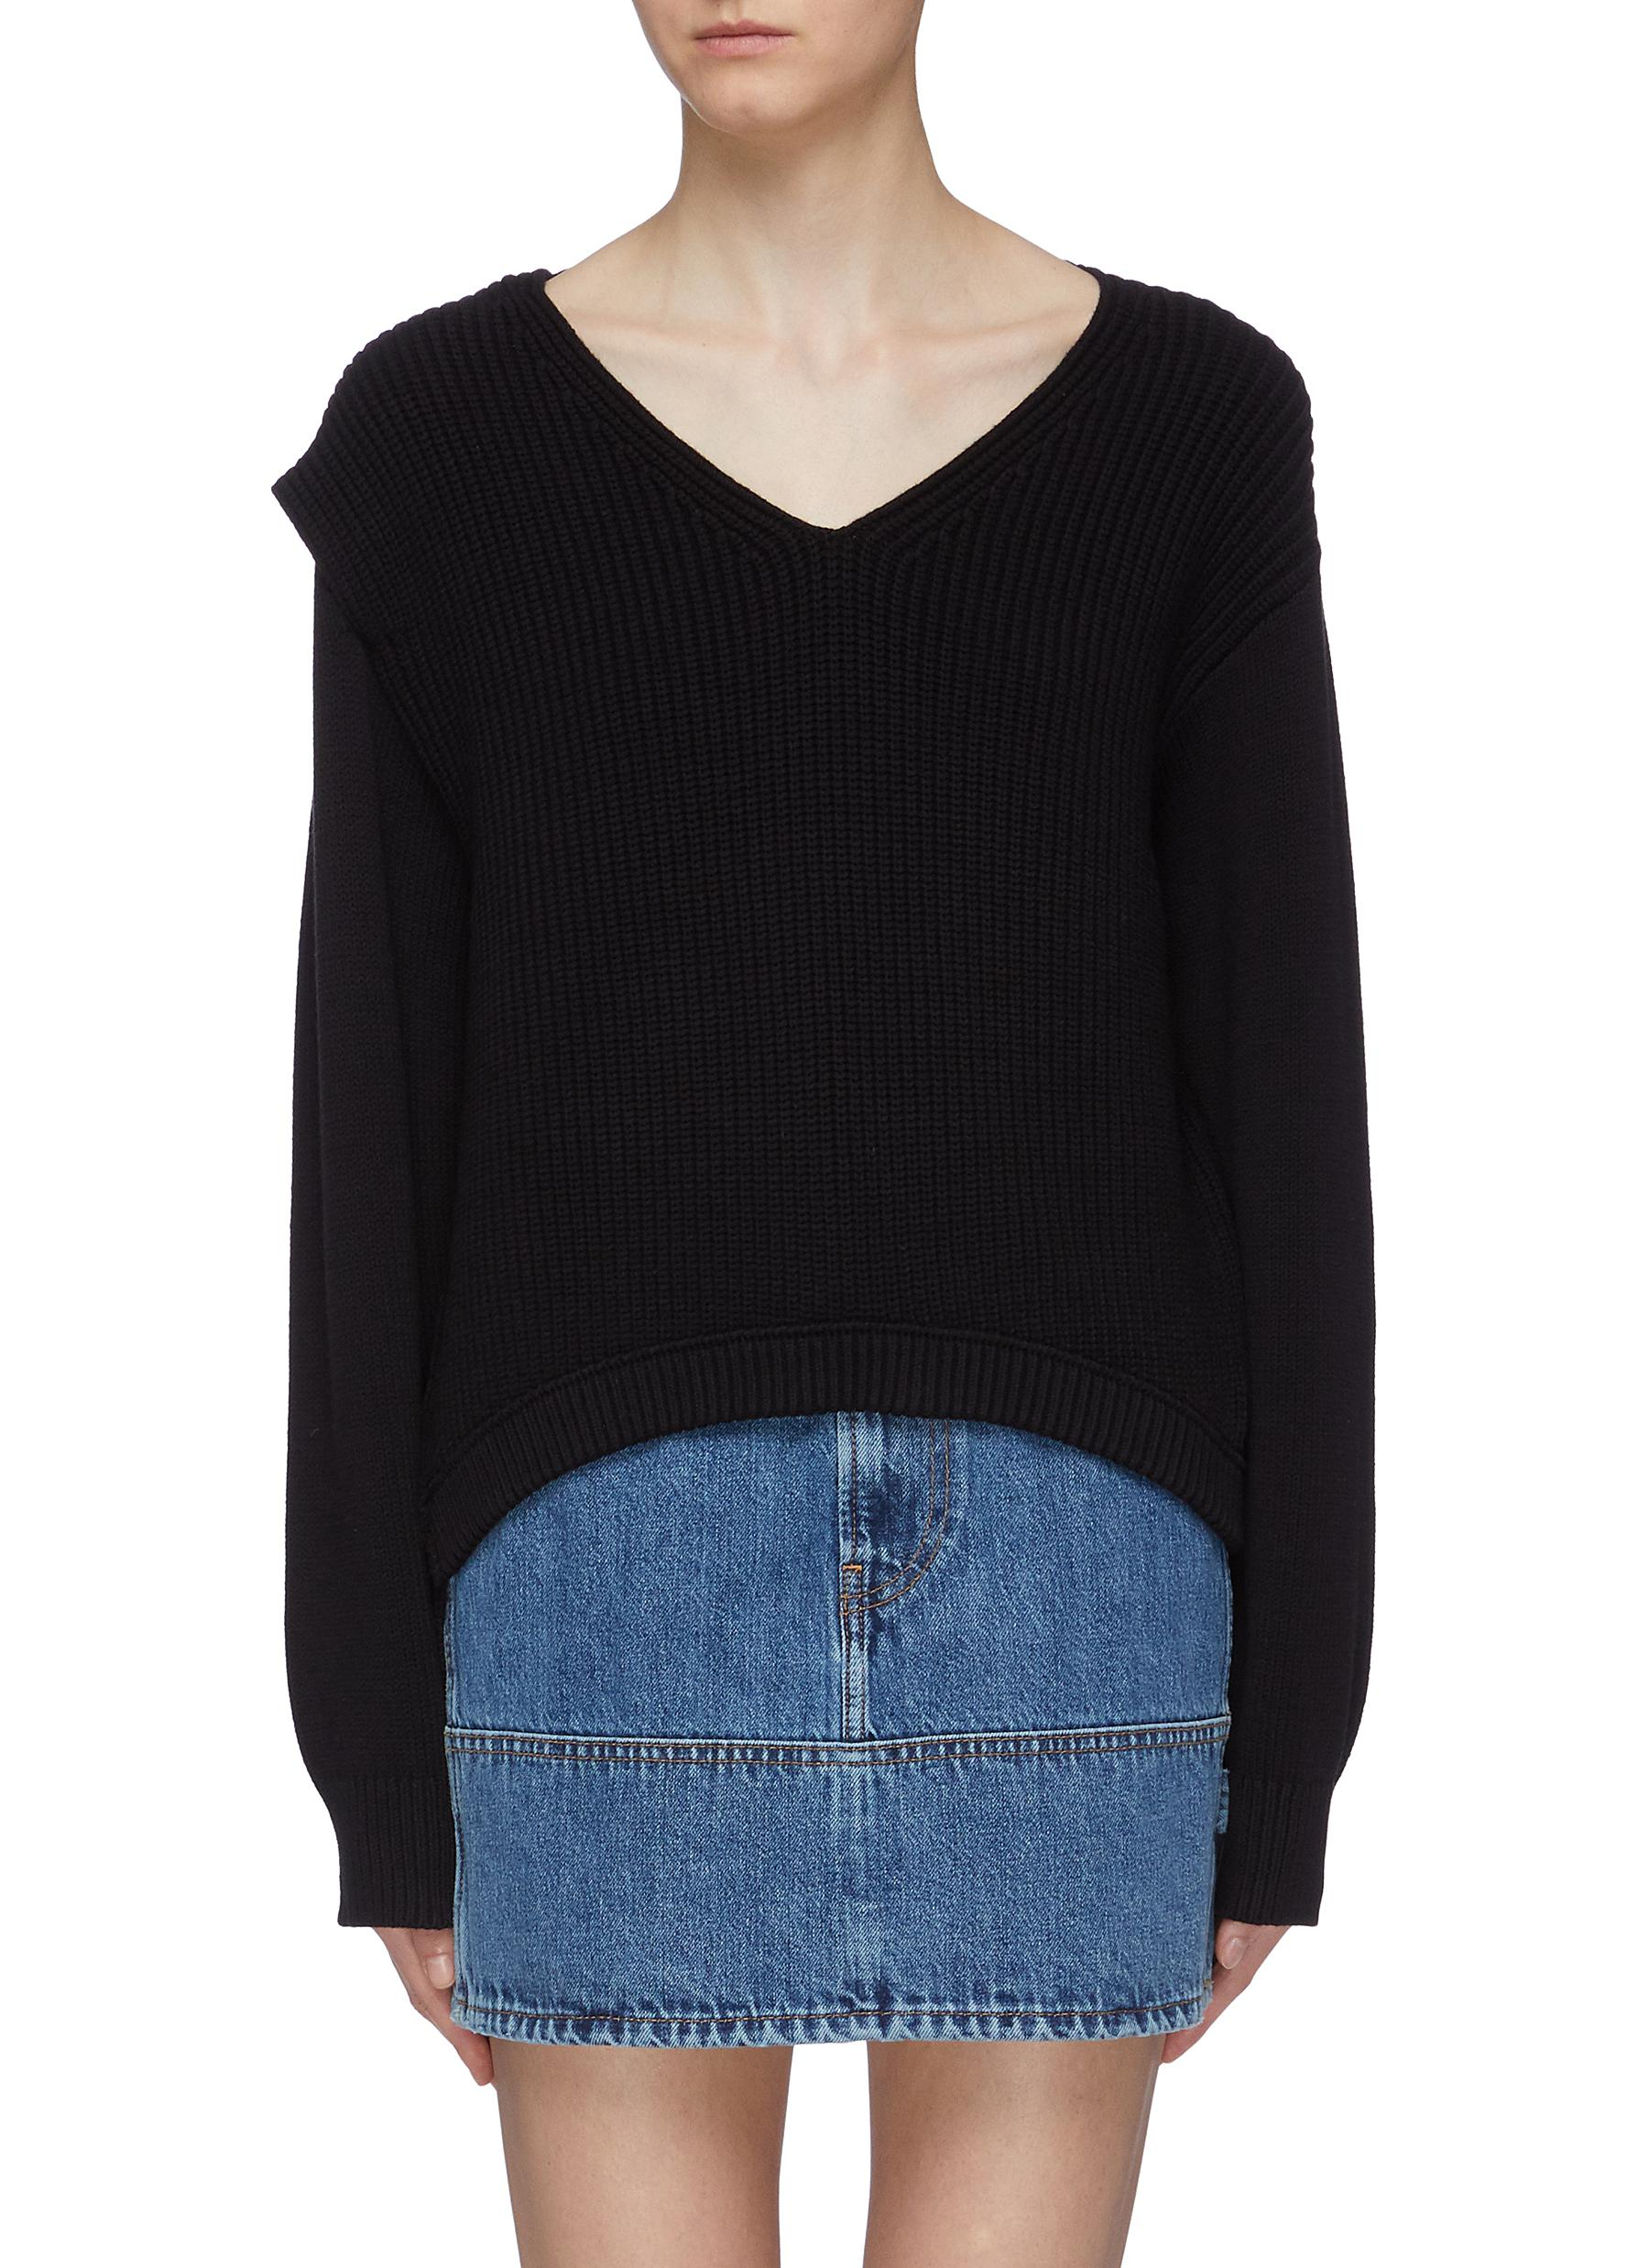 Utility V-neck sweater by Alexanderwang.T